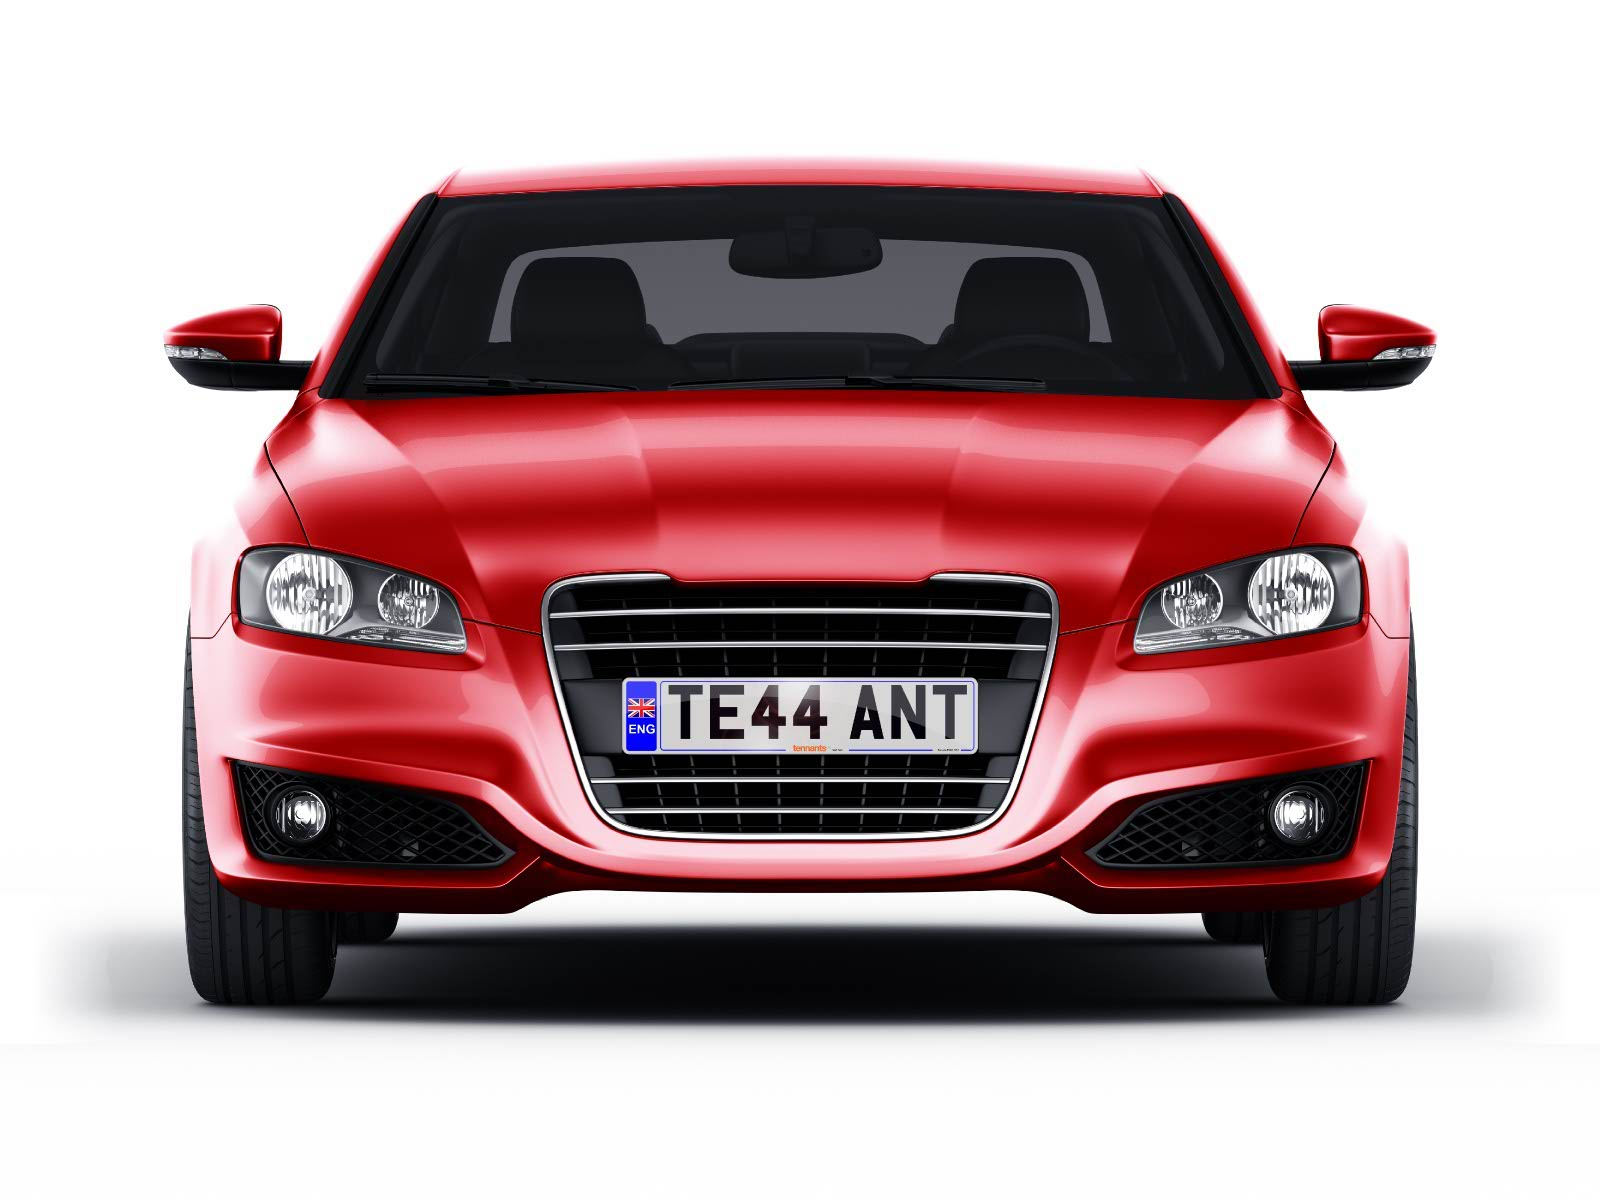 Hybrid number plate on red car